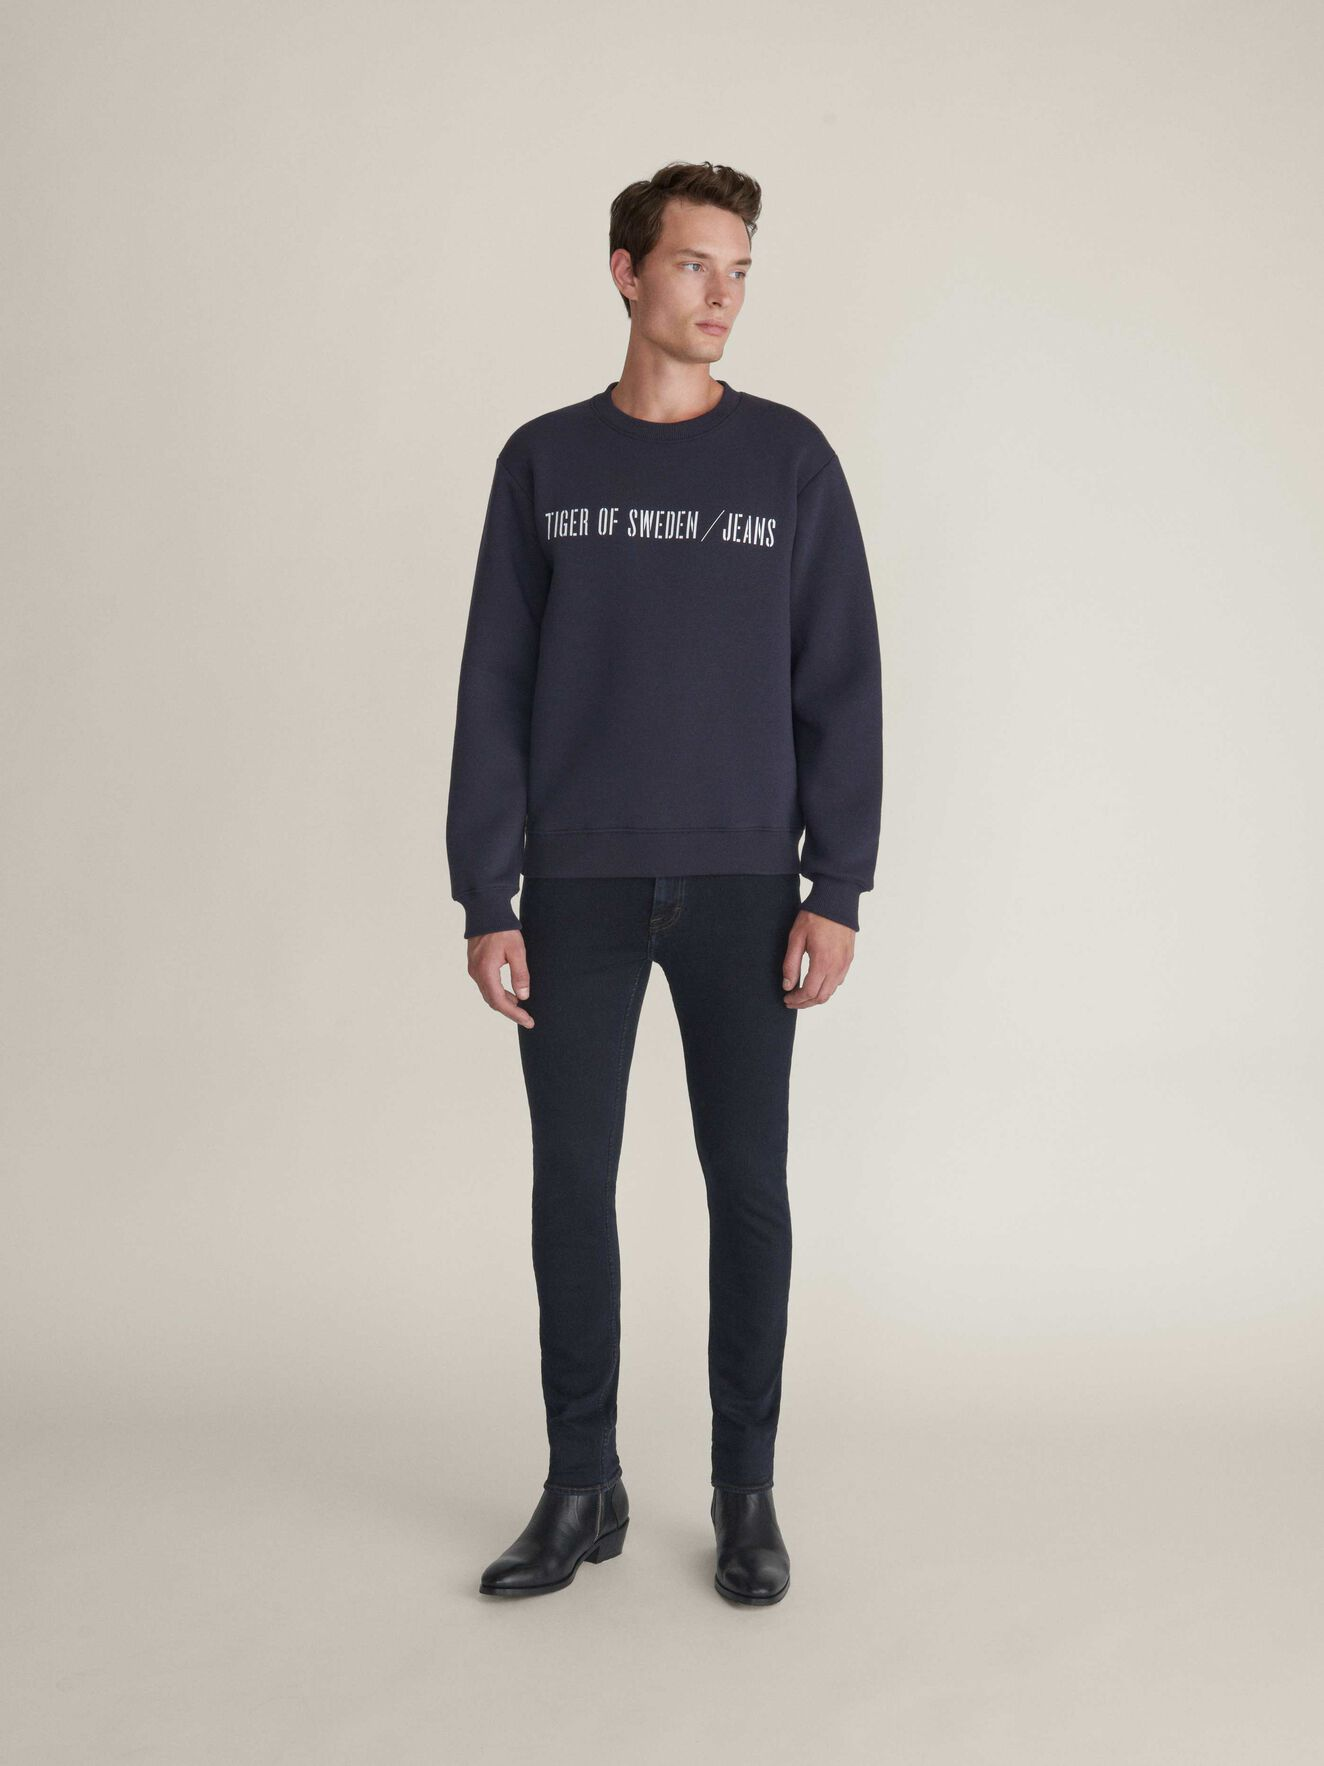 Tana Pr Sweatshirt in Deep Well from Tiger of Sweden